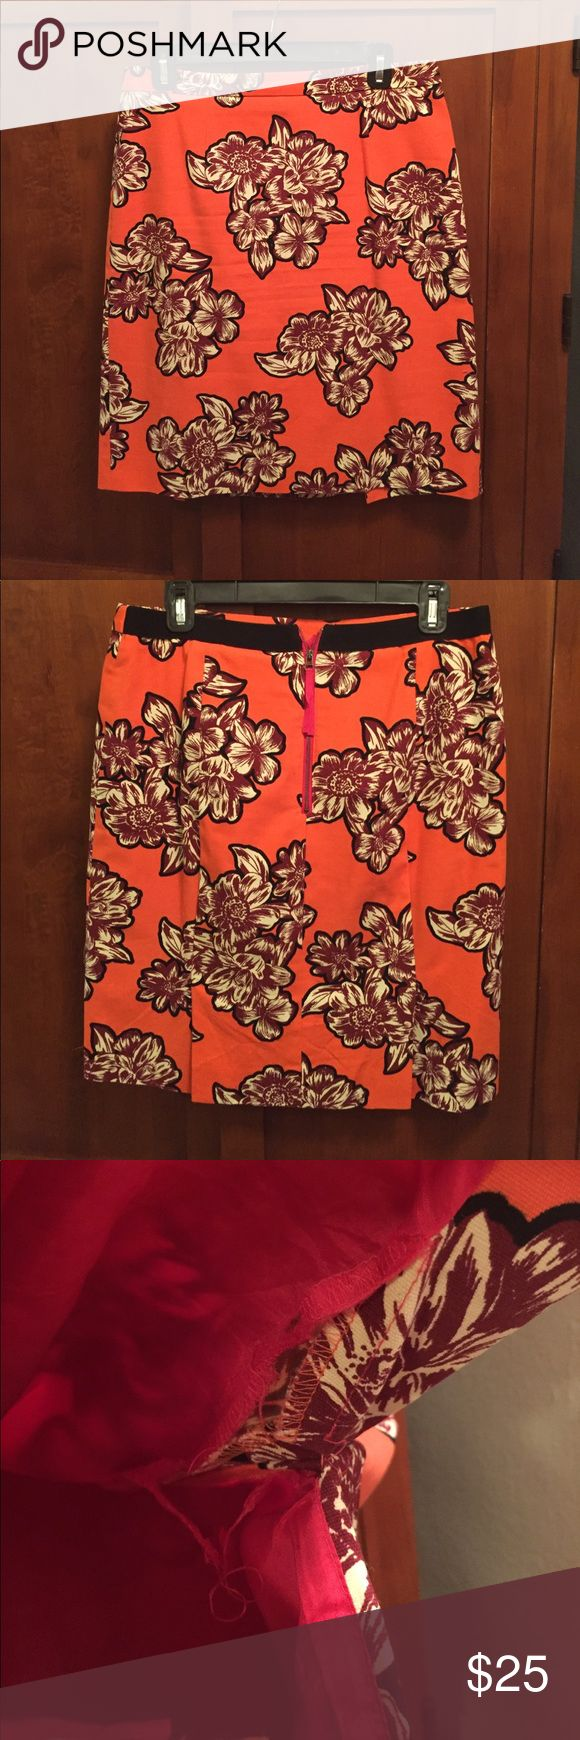 Anthropologie Maeve Floral Pencil Skirt Gorgeous orange pencil skirt for fall!  Excellent used condition except for a rip in the lining along the seam, which appears fixable.  Lots of life left and priced to sell.  Offers welcome. Anthropologie Skirts Pencil